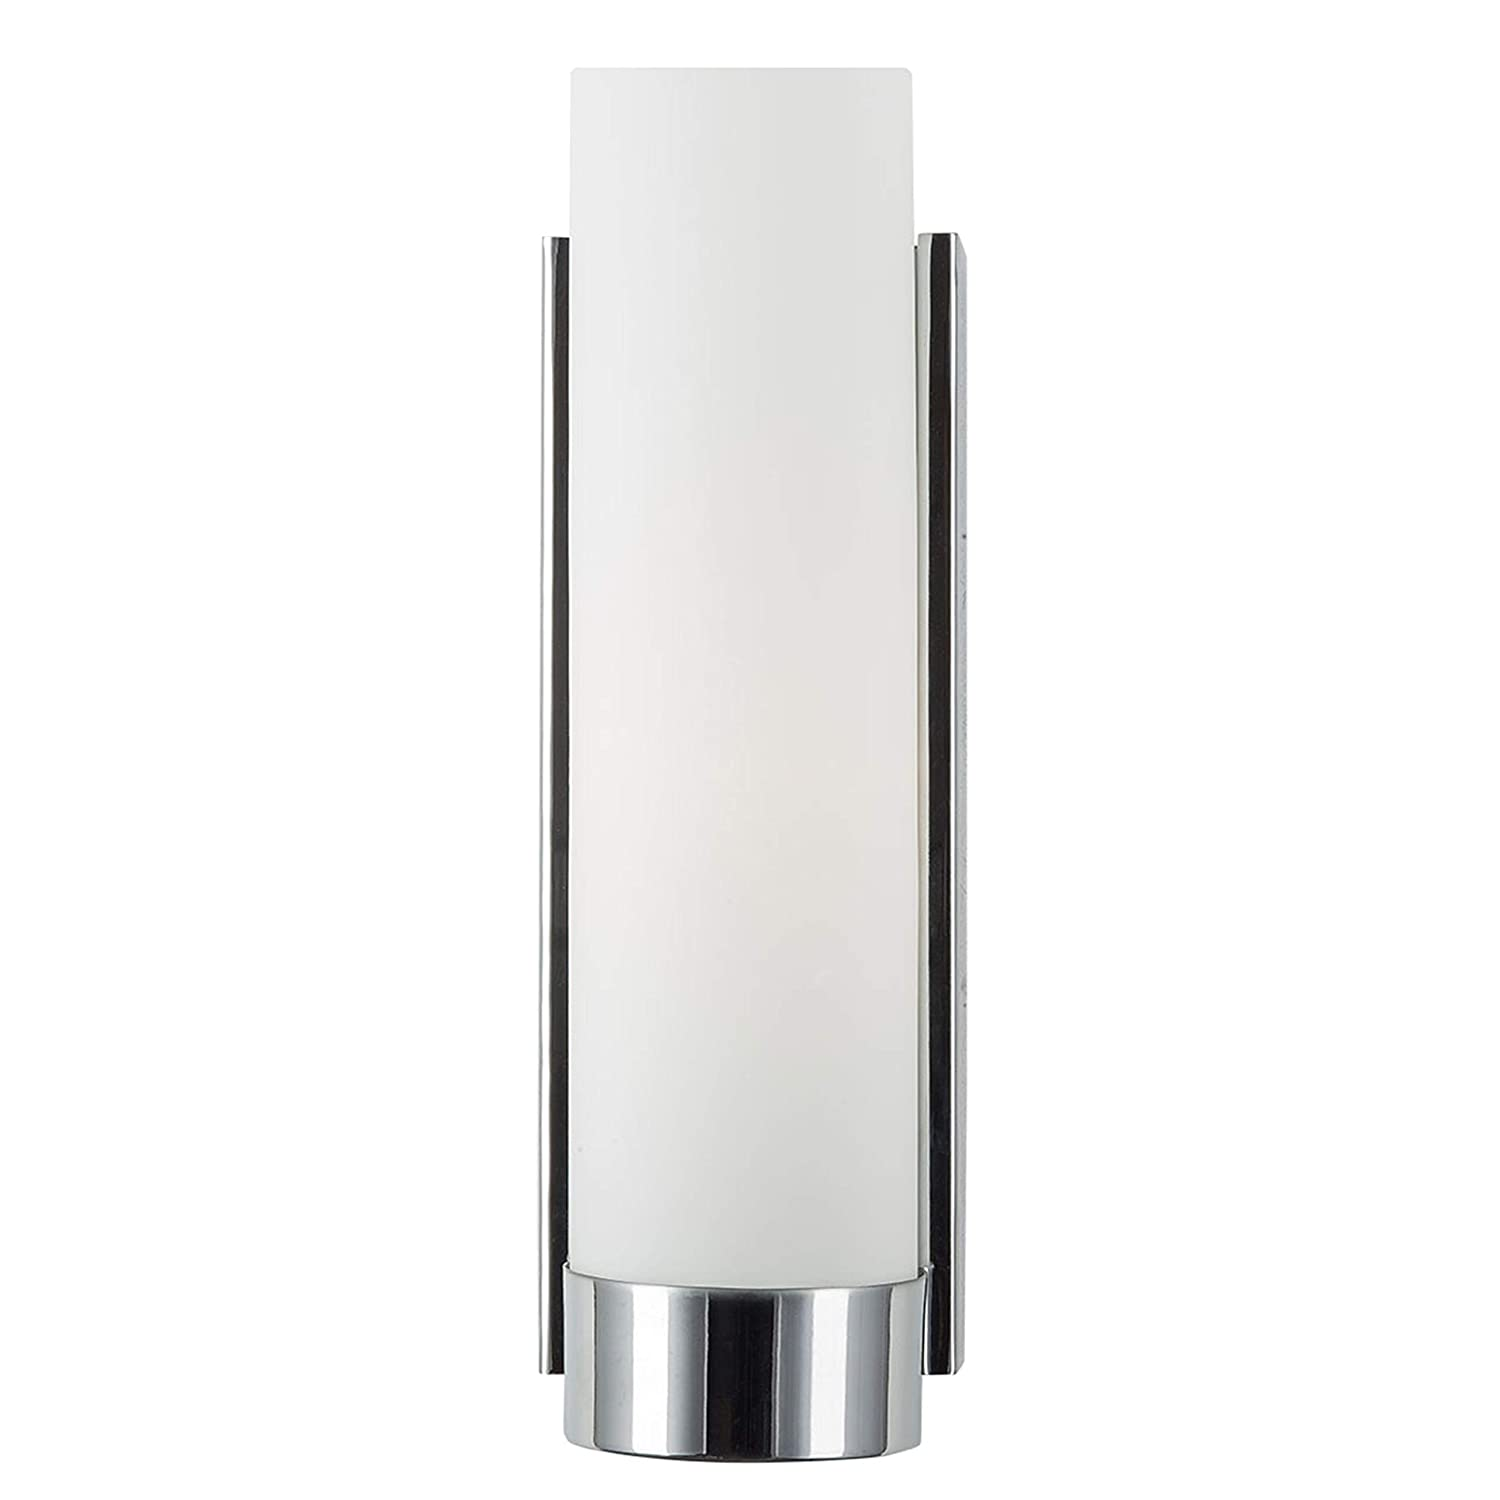 Elina Bathroom Vanity Light Chrome w Frosted Shade – Linea di Liara LL-WL301-PC